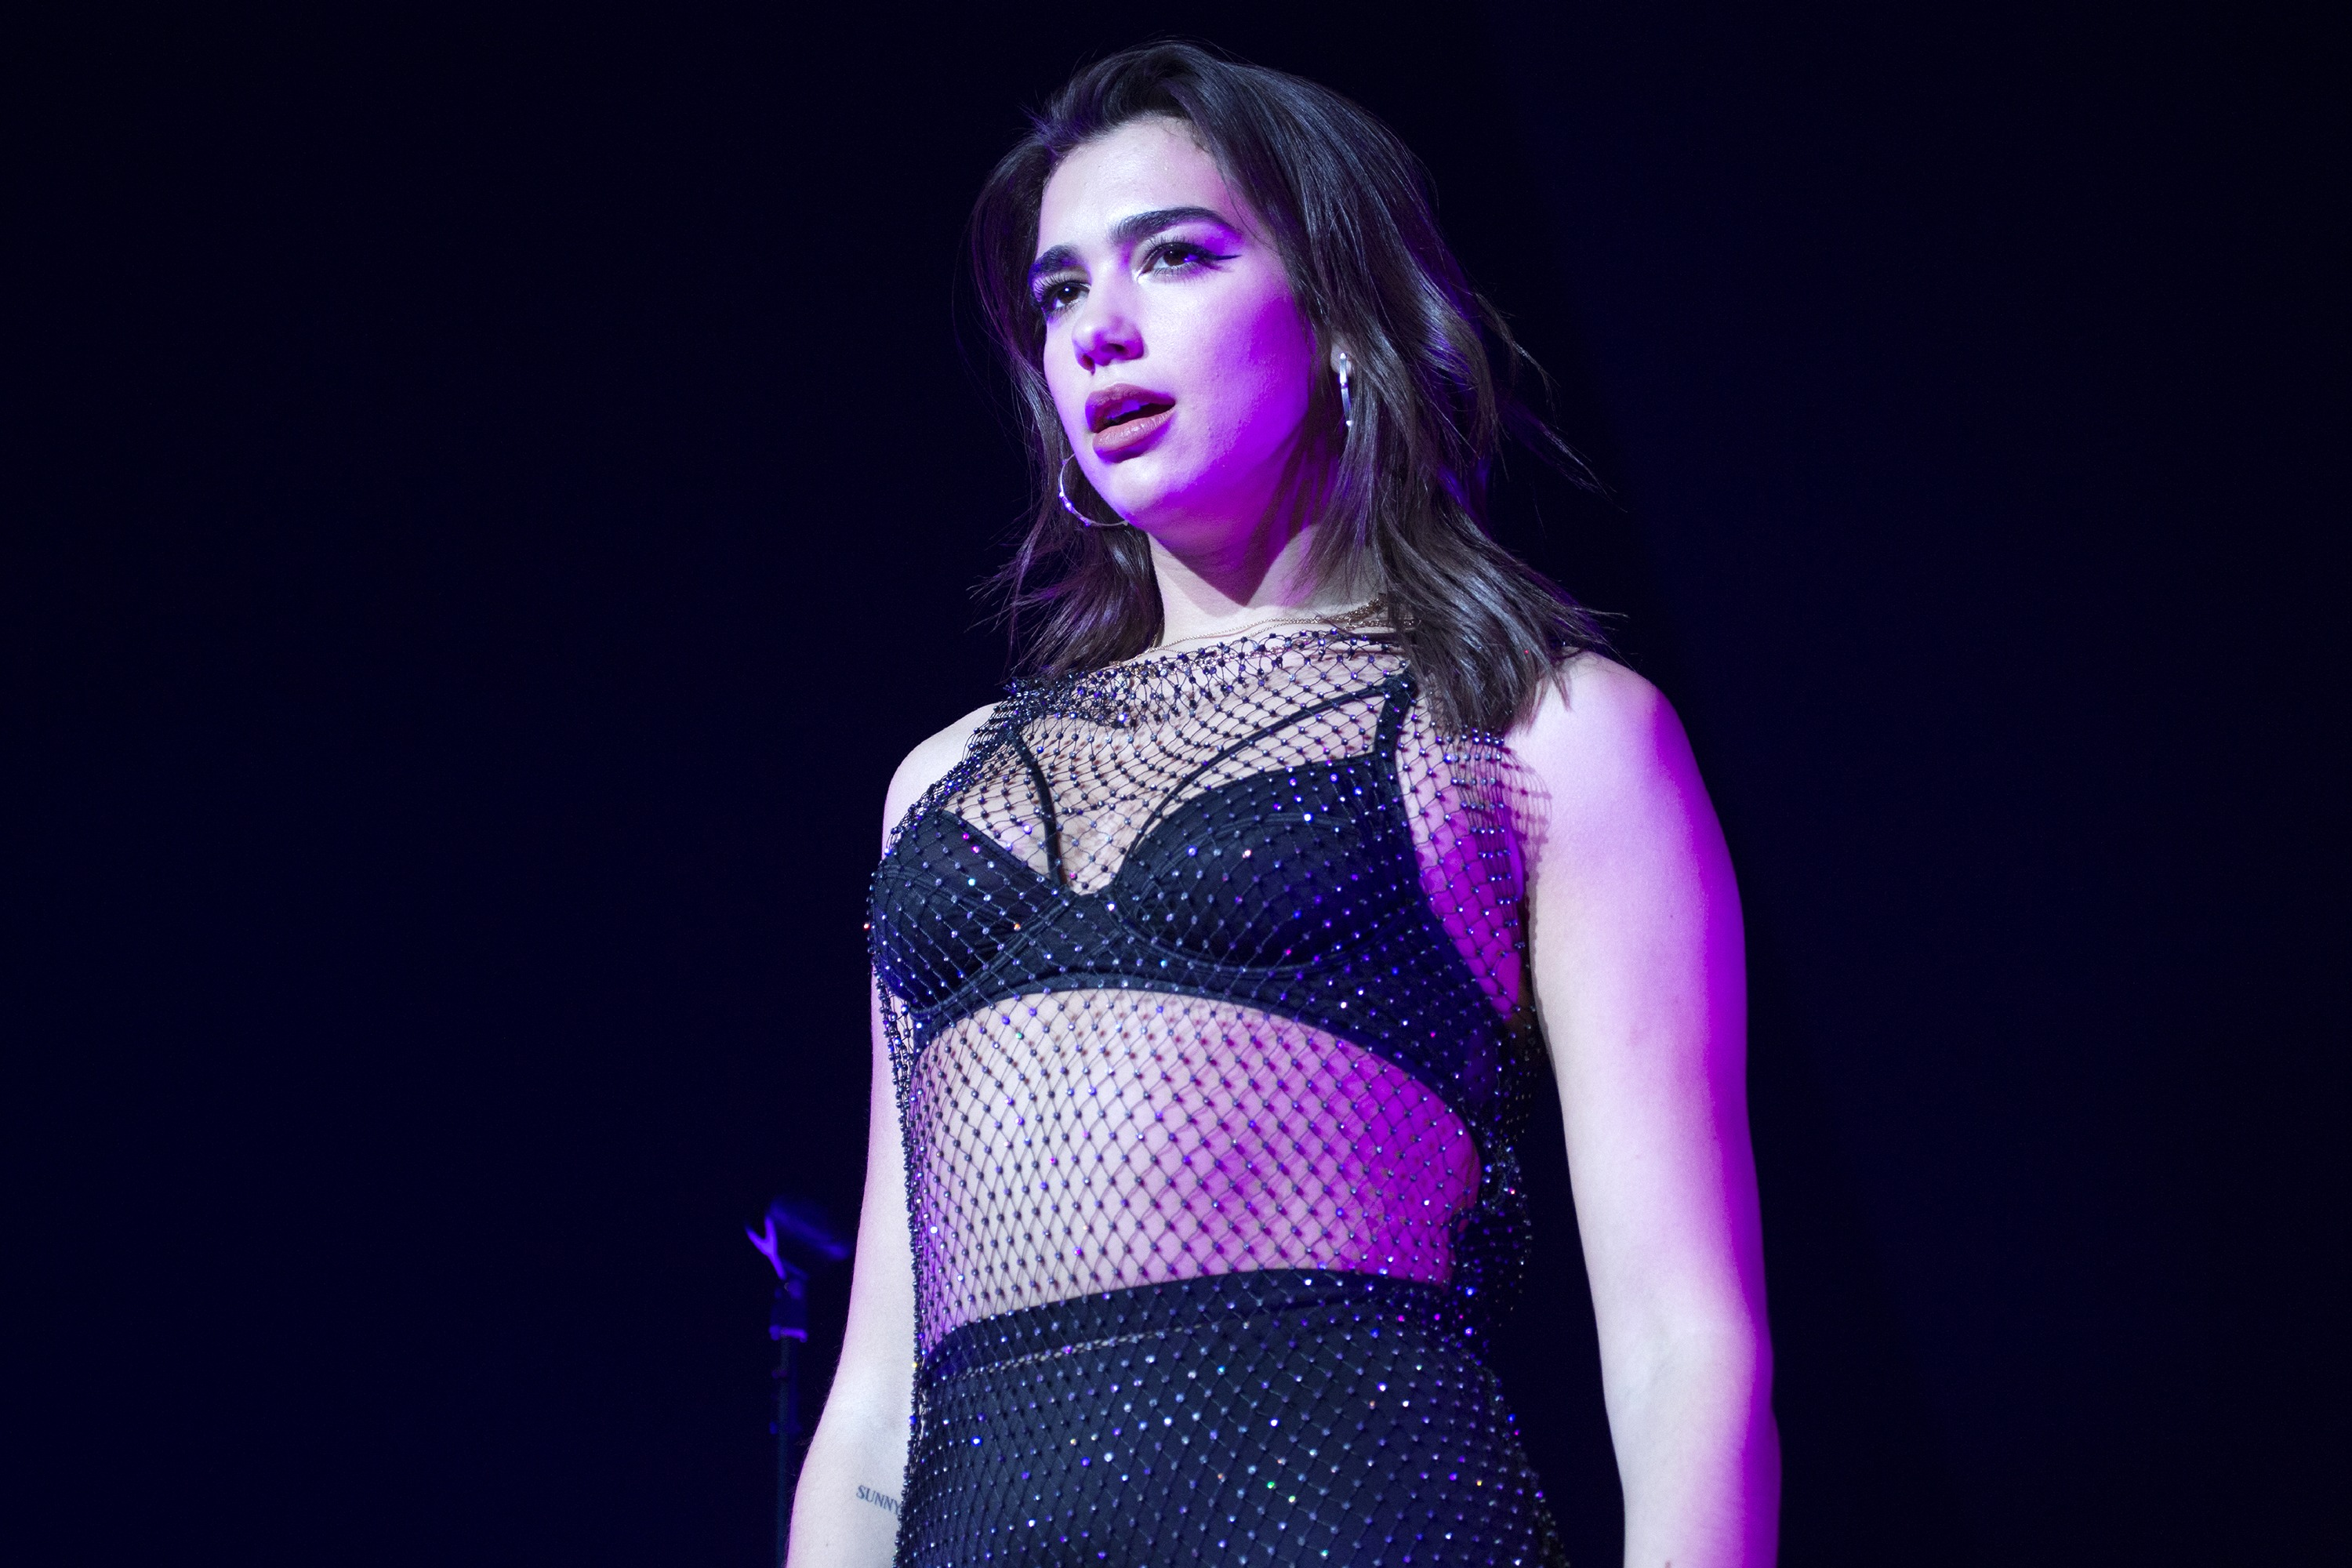 NEW YORK, NY - NOVEMBER 24: Dua Lipa performs onstage at Hammerstein Ballroom on November 24, 2017 in New York City. (Photo by Santiago Felipe/Getty Images)